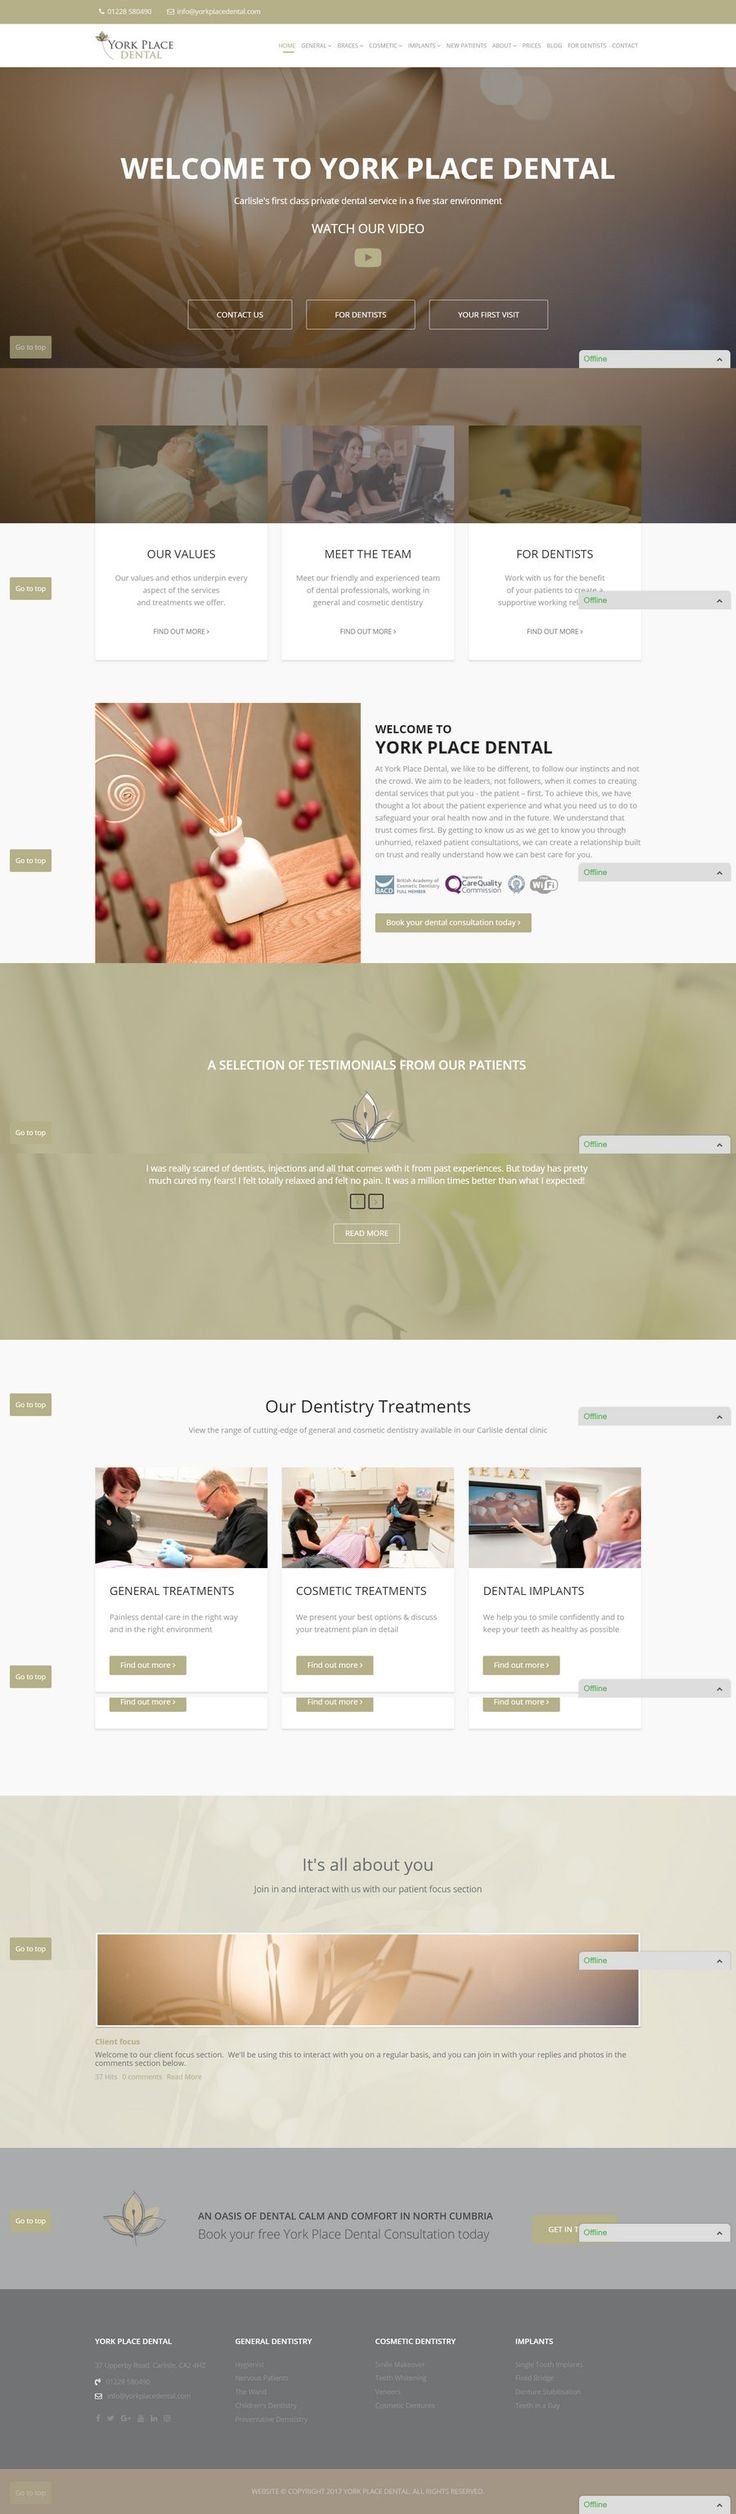 With SEO and copy from Consulting Cumbria, this website makes stunning use of client supplied images to make the website feel like an extension of the dental practice.